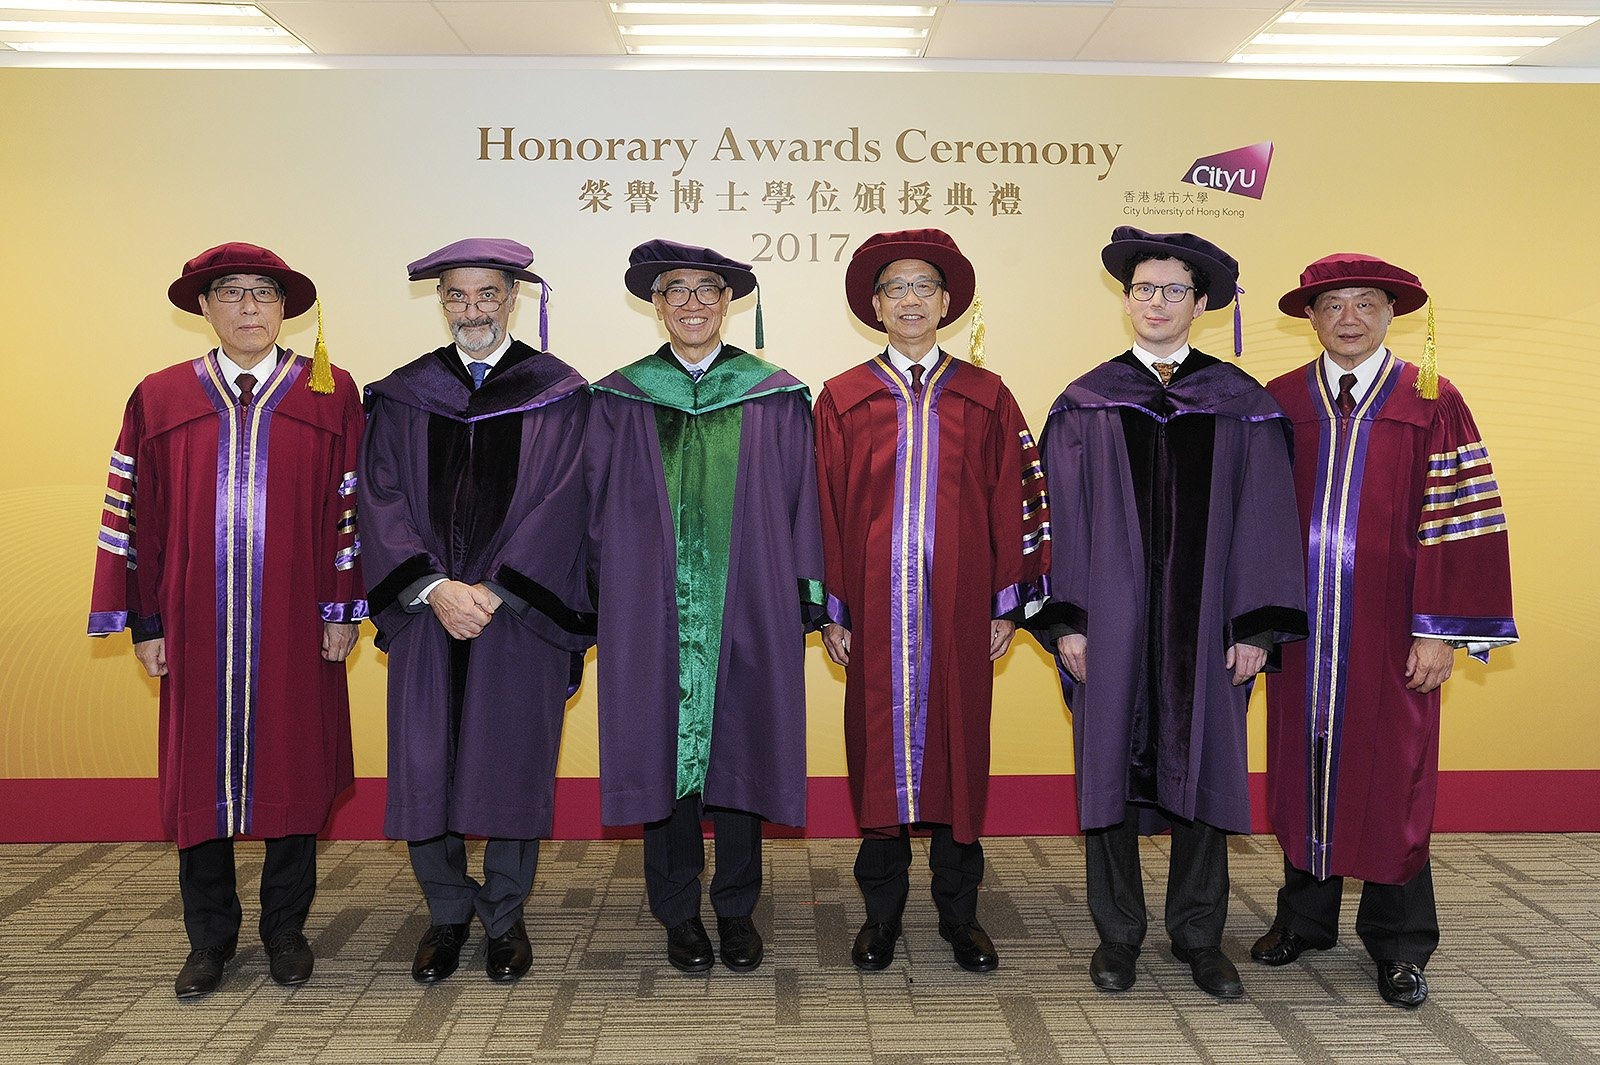 (From left) Professor Way Kuo, Professor Serge Haroche, Dr Joseph Lee, Dr Chung Shui-ming, Professor Wendelin Werner and Mr Herman Hu Shao-ming.